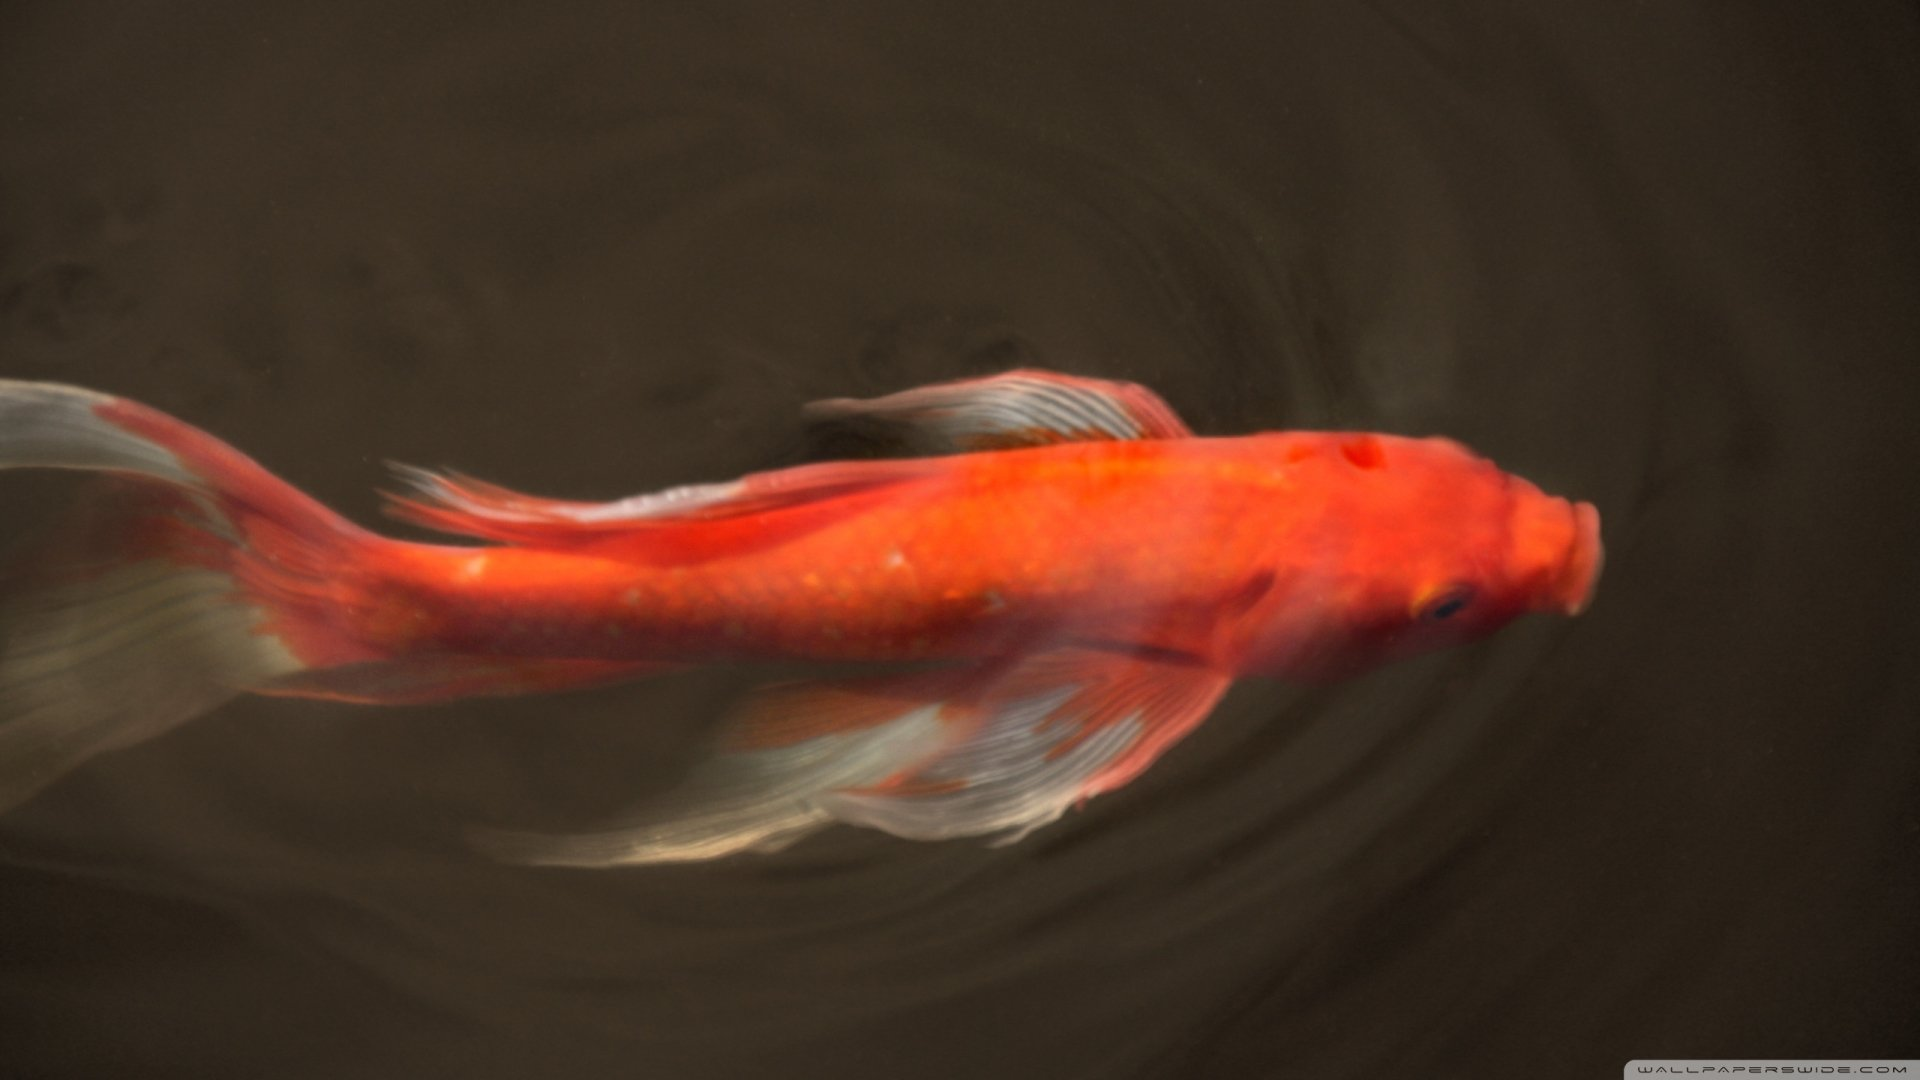 Koi full hd wallpaper and background image 2560x1440 for Koi fish background